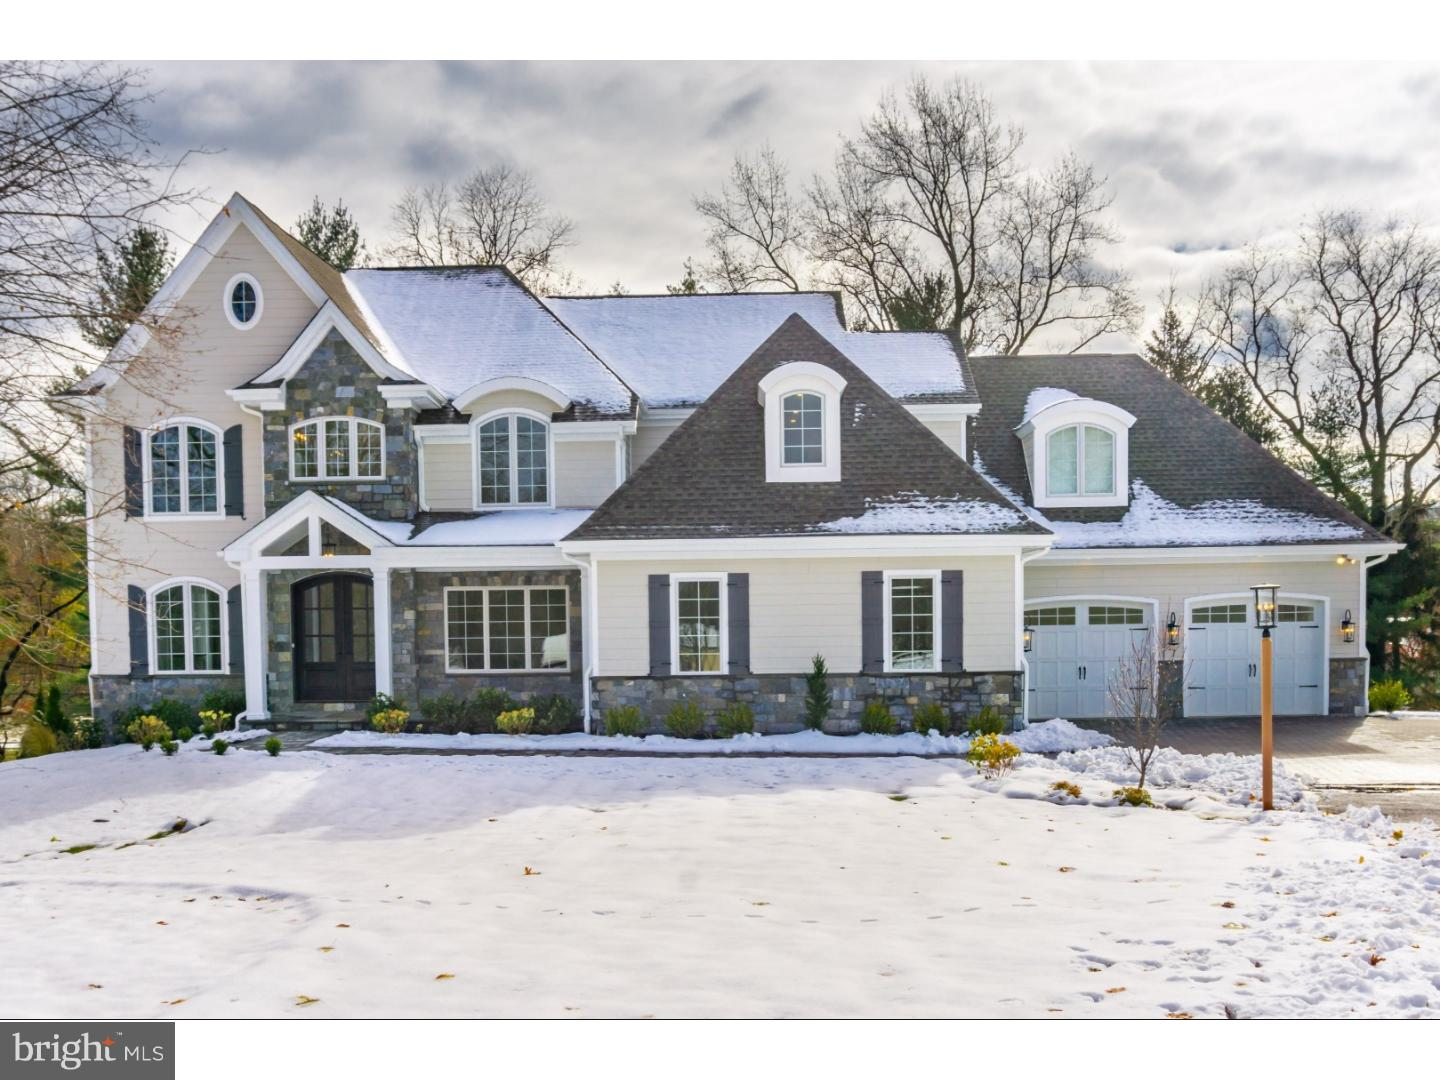 523 WEBB ROAD, CHADDS FORD, PA 19317